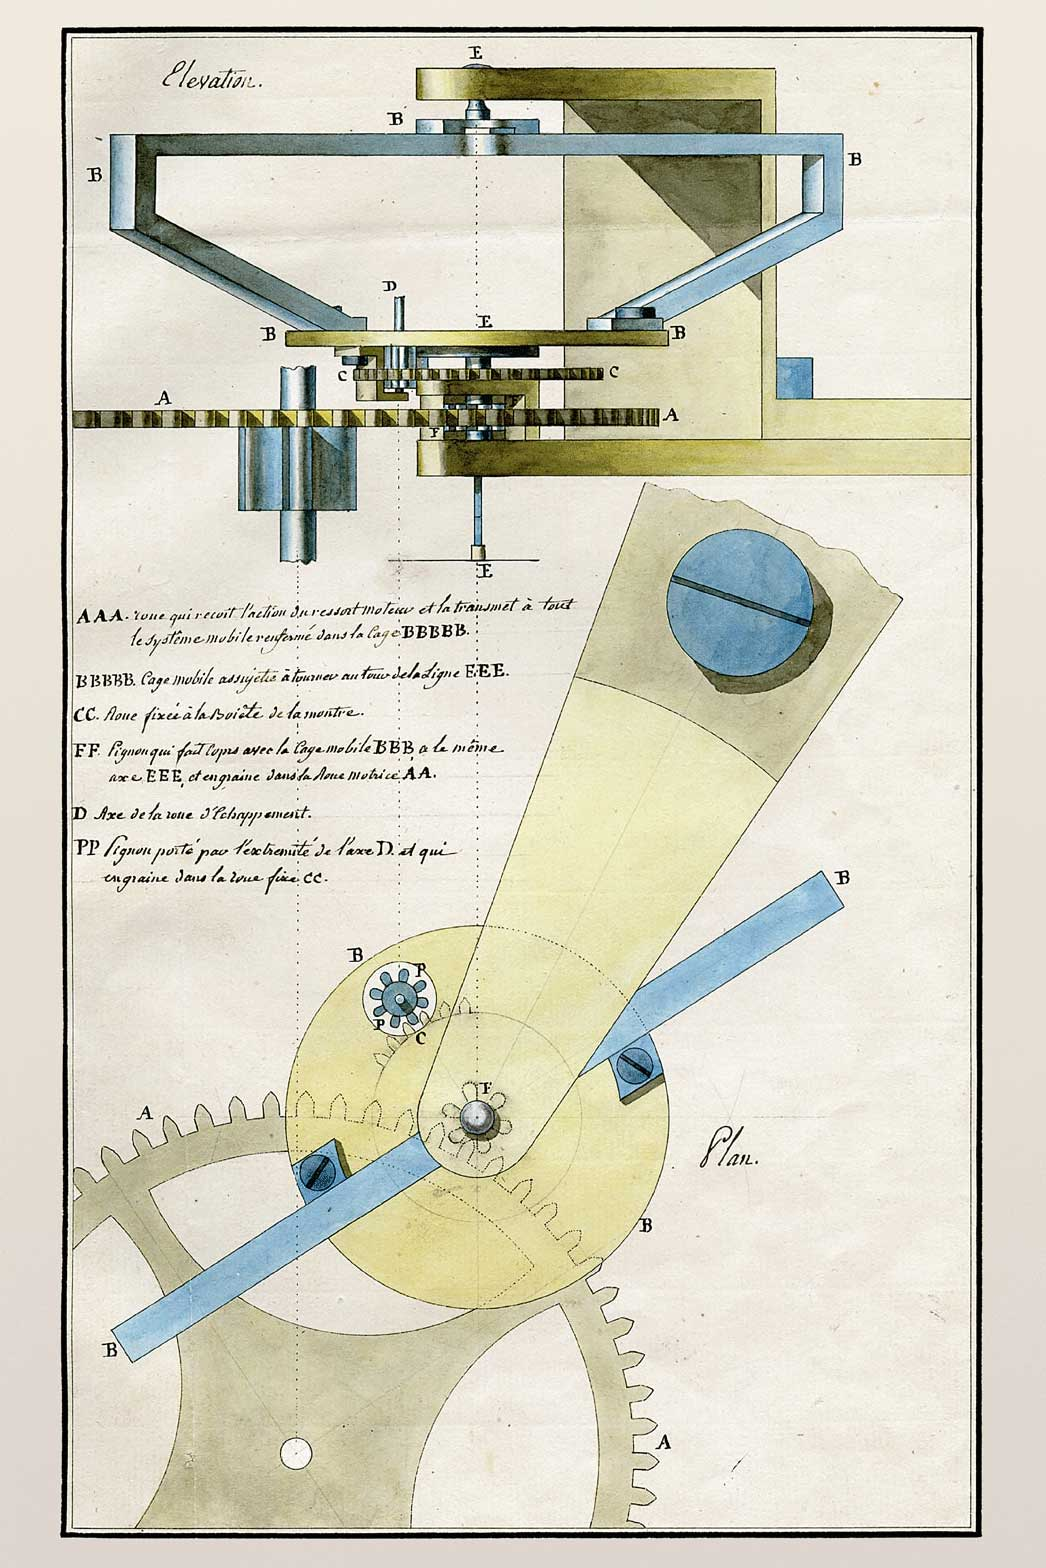 """On June 26, 1801, in France, Abraham-Louis Breguet earned the rights for a patent which would last for a ten year period for a new type of regulator called the """"Tourbillon"""" (Image: breguet.com)"""